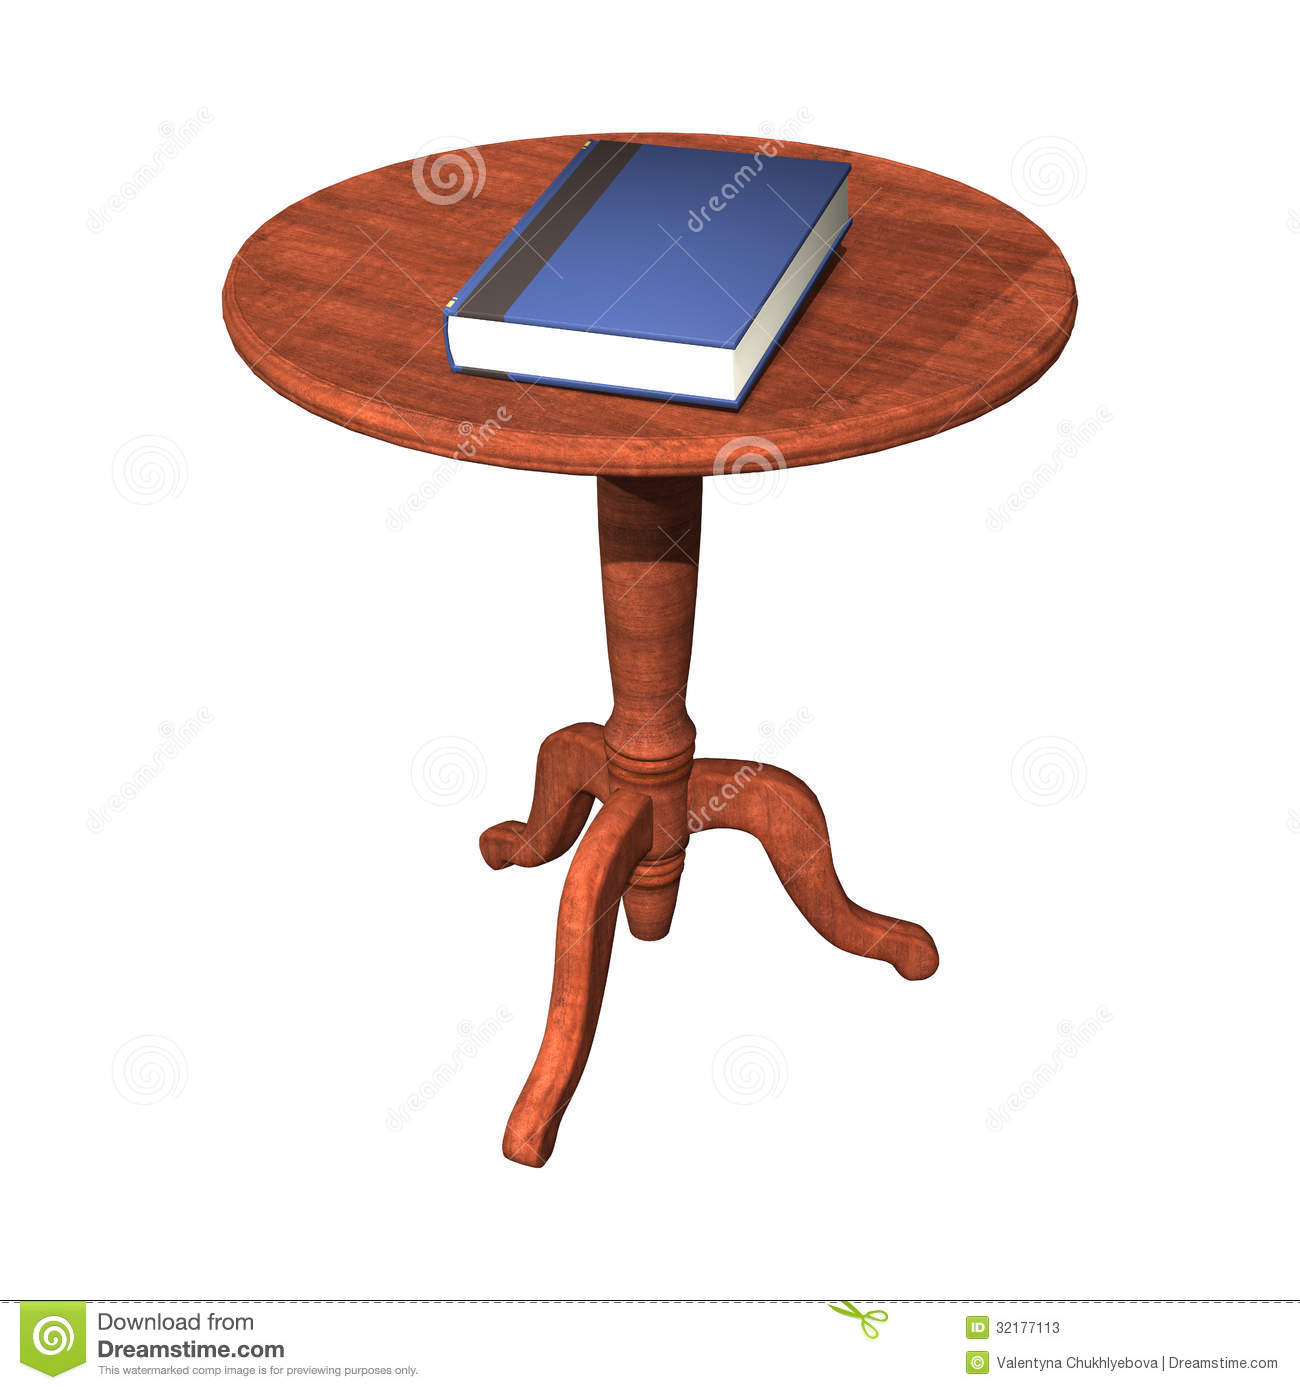 Book On The Table Stock Photos Image 32177113 : book table d digital render laying isolated white background 32177113 from www.dreamstime.com size 1300 x 1390 jpeg 96kB